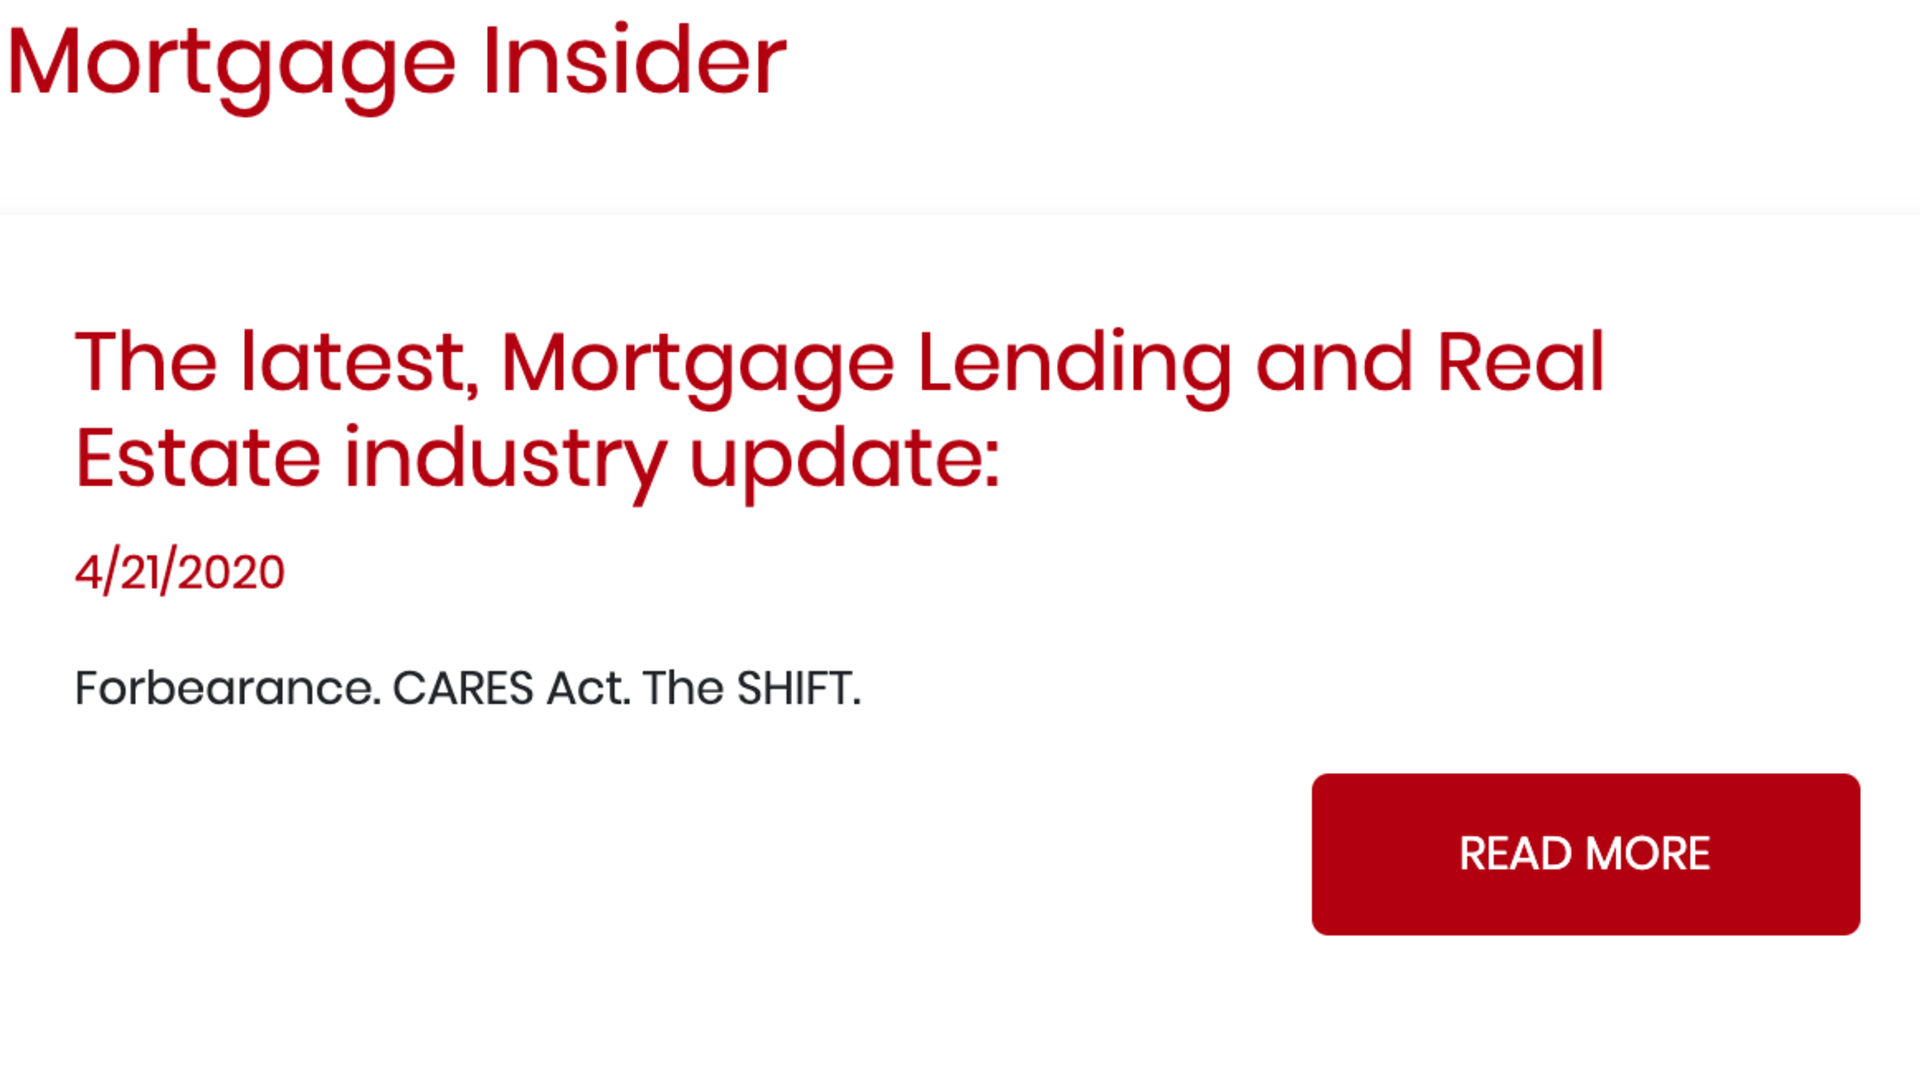 The Latest, Mortgage Lending and Real Estate Industry Update